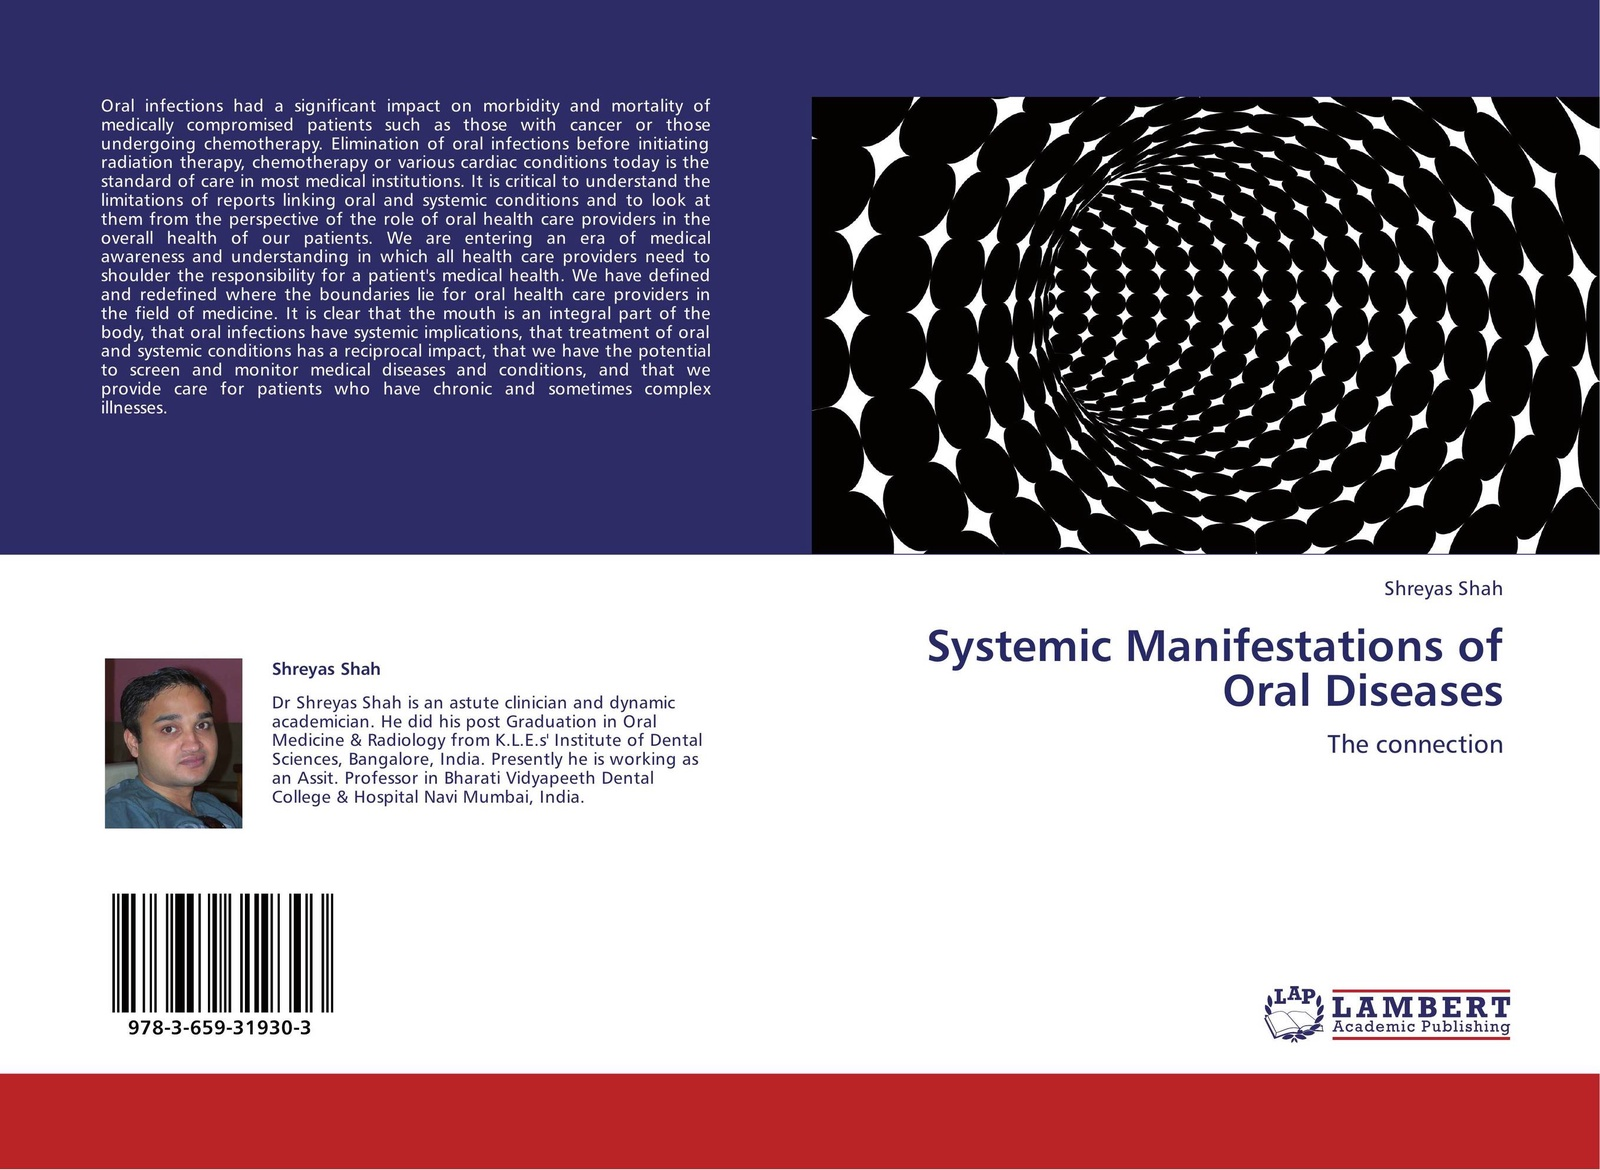 Shreyas Shah Systemic Manifestations of Oral Diseases peter lockhart b oral medicine and medically complex patients